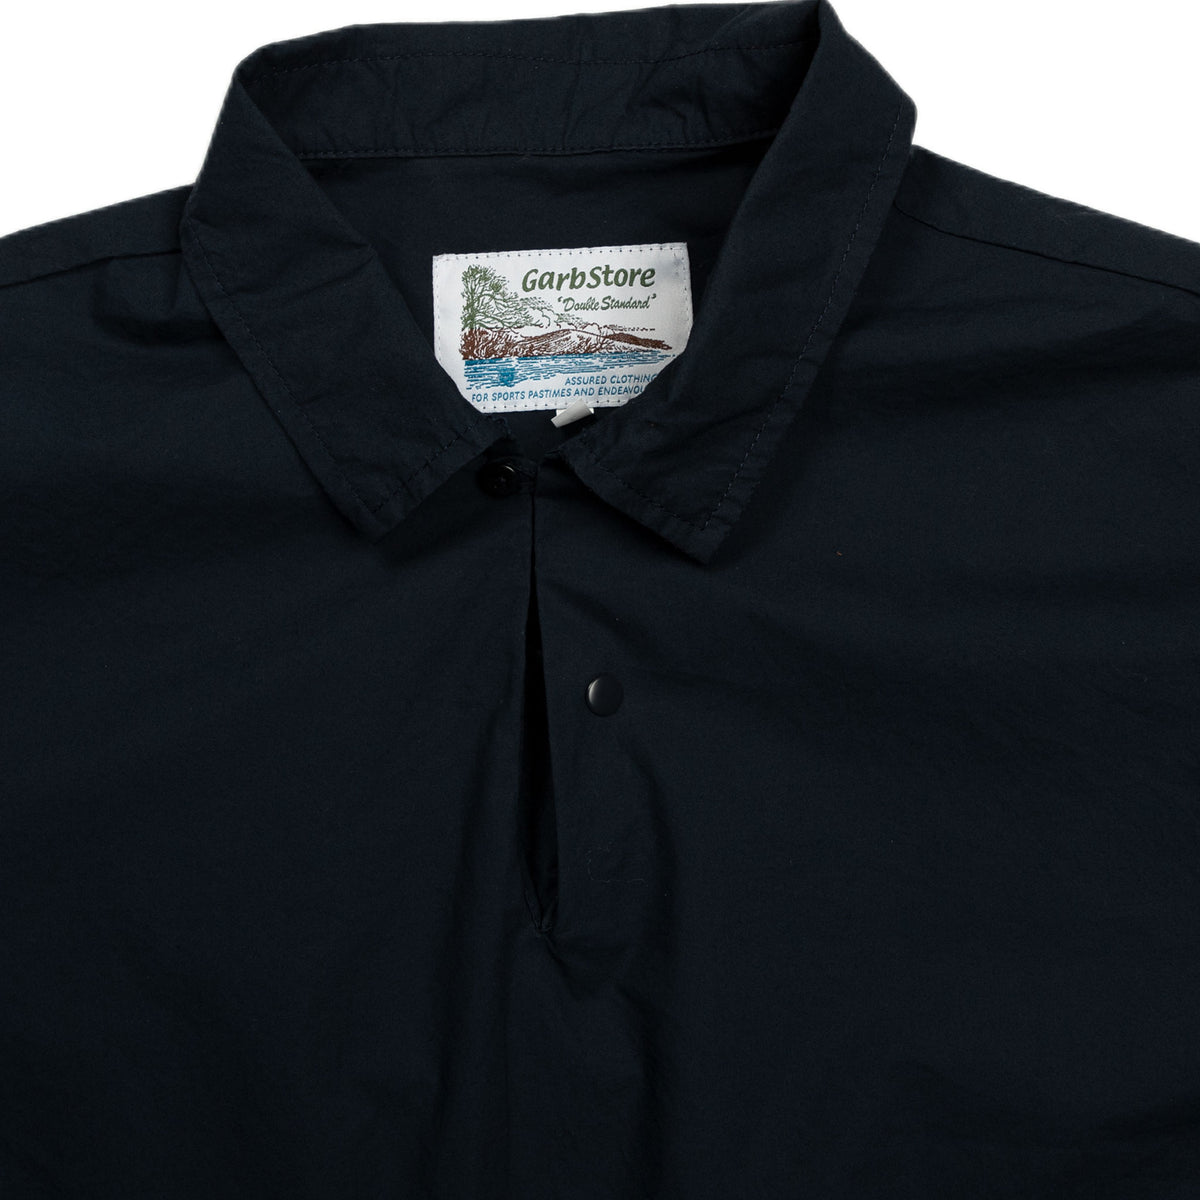 Garbstore Expert Shirt in Navy